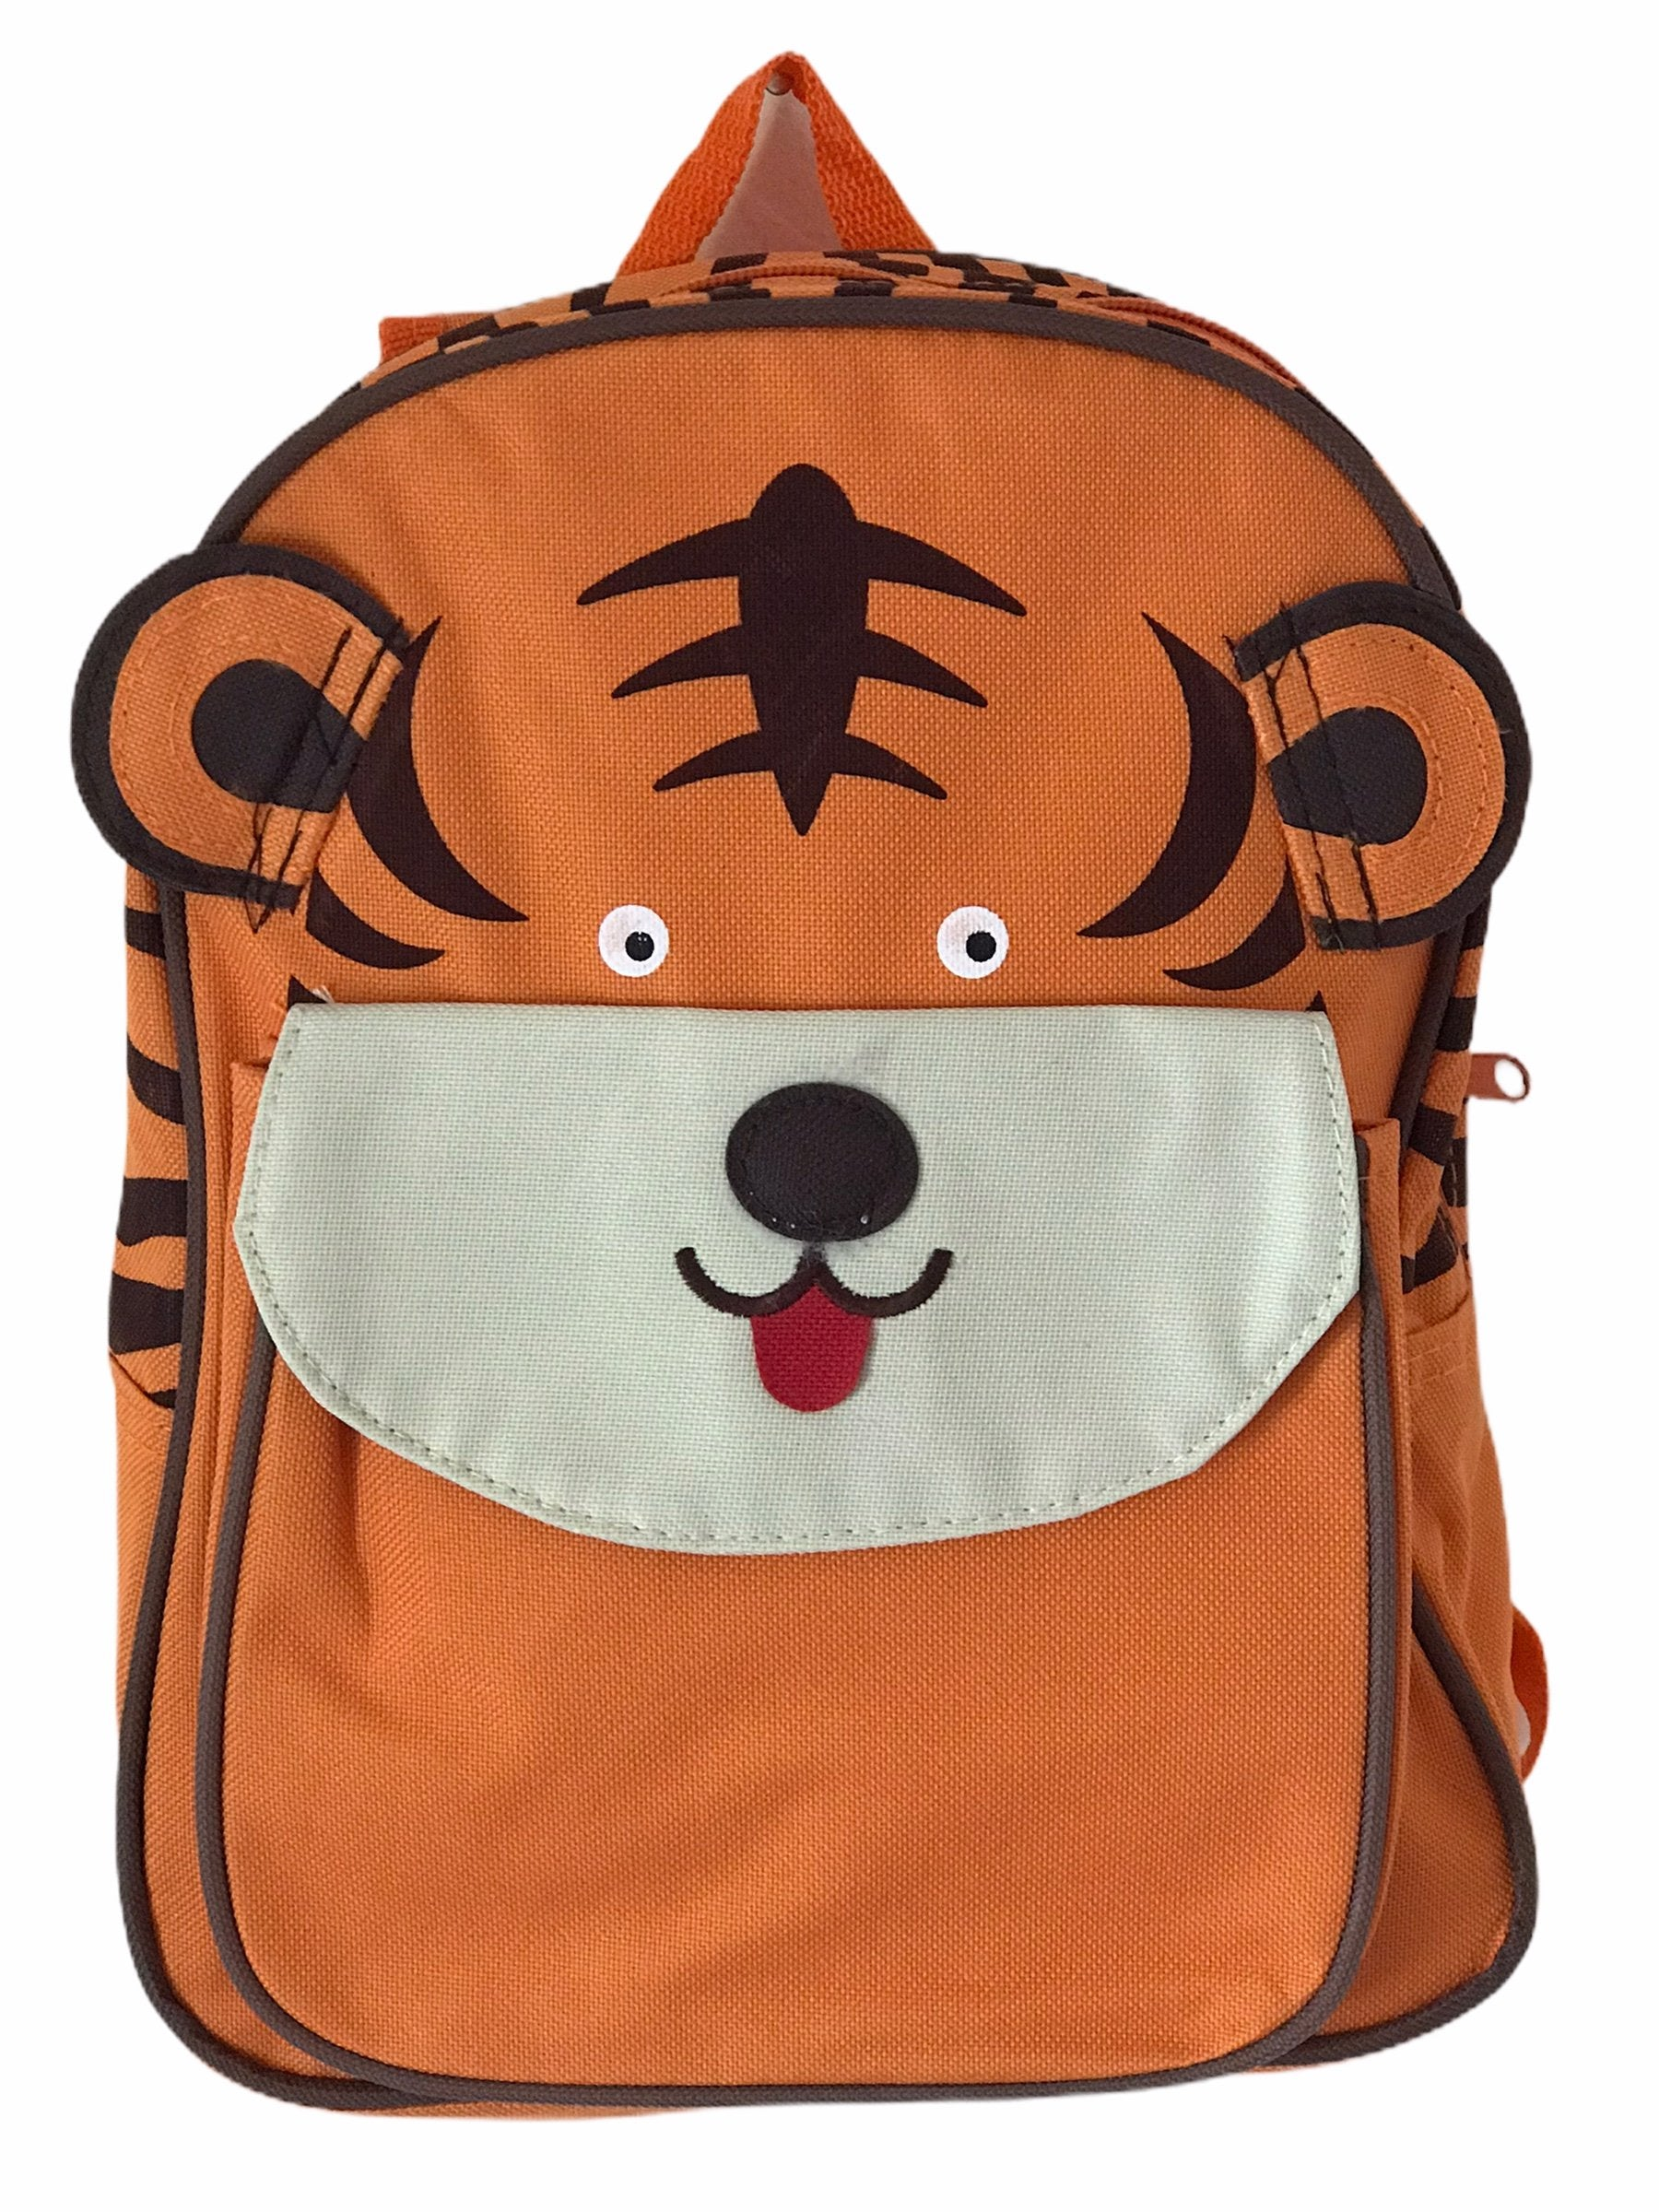 3D Lion Animal Backpack Bag